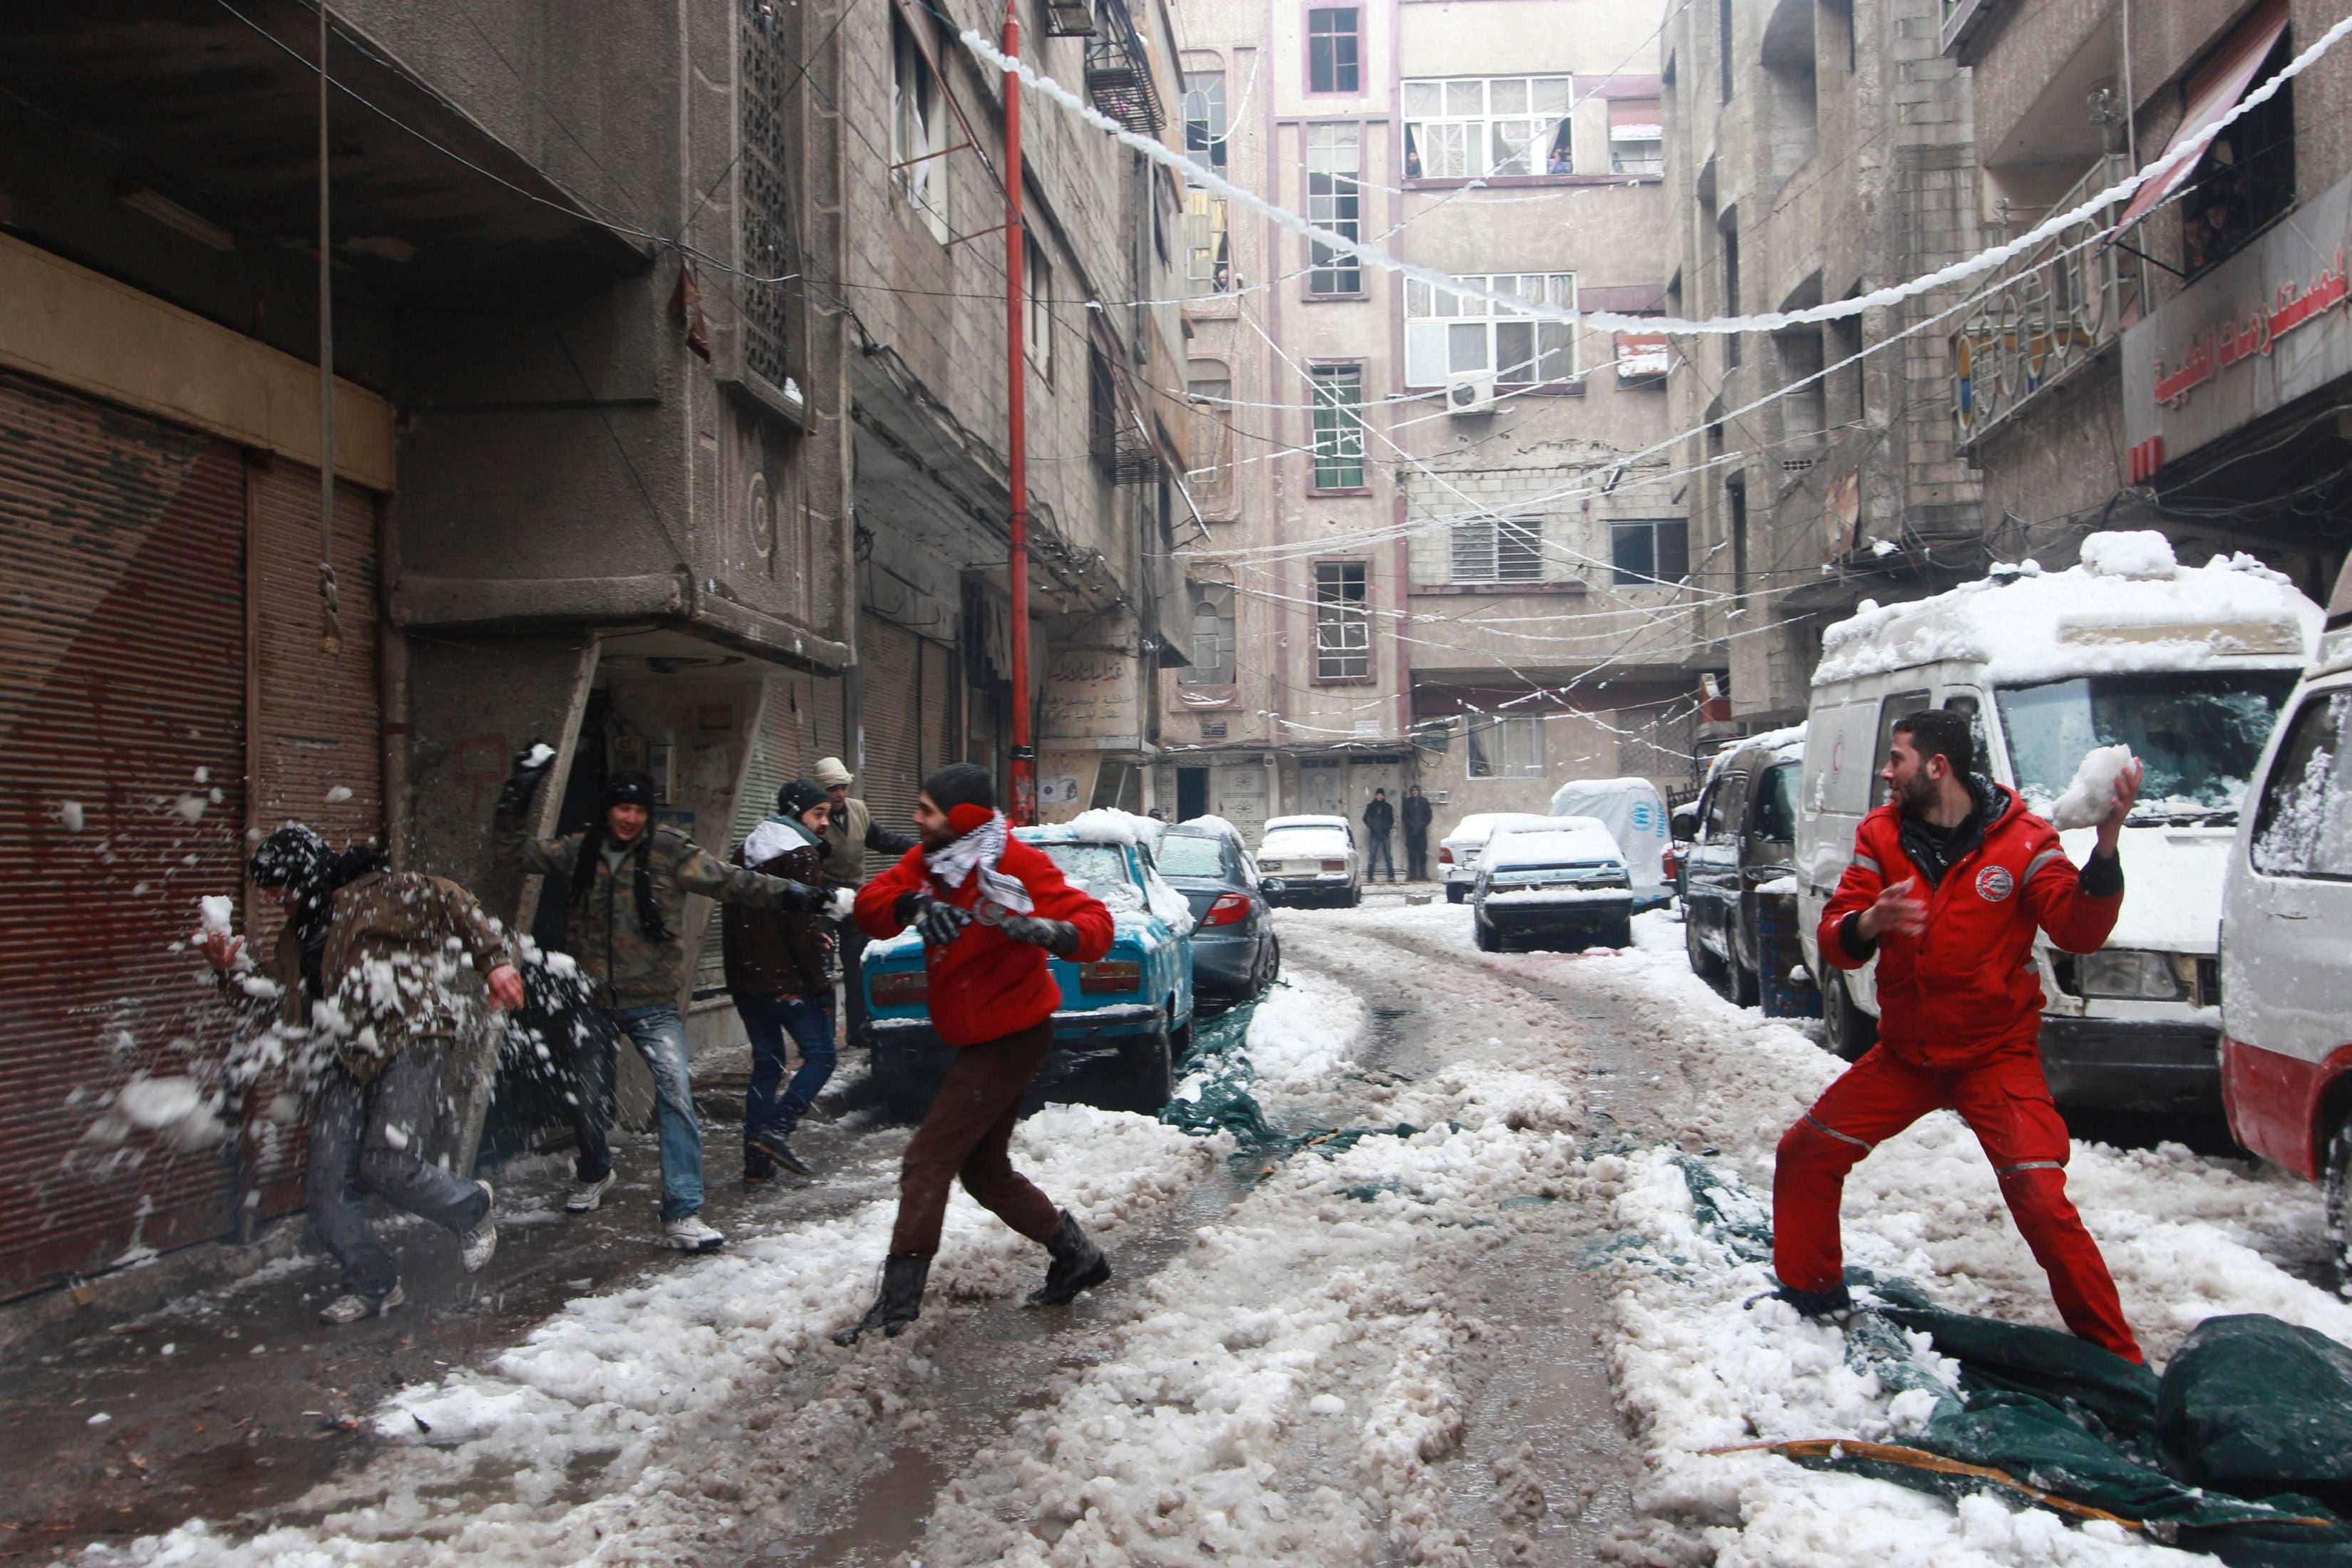 Snow brings some joy to Syrians